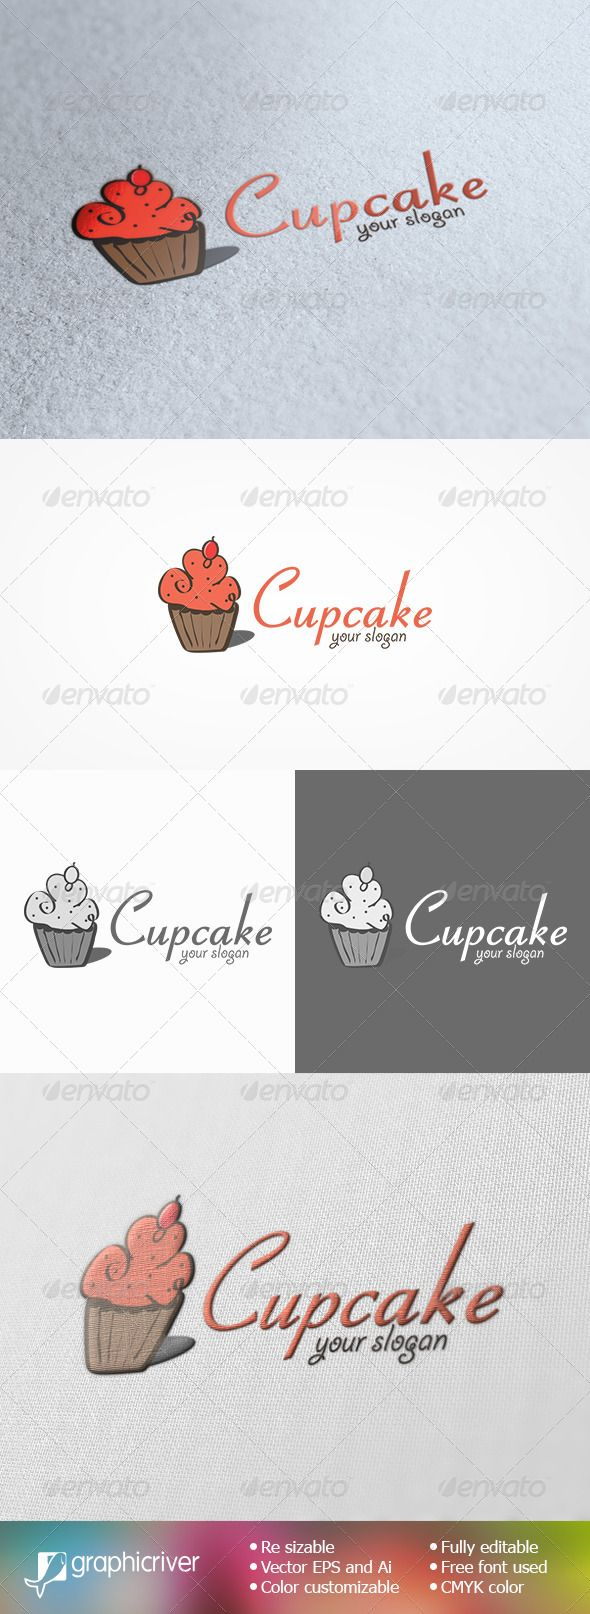 229 best bakery logo template images on pinterest bakery logo cupcake logo template pronofoot35fo Image collections